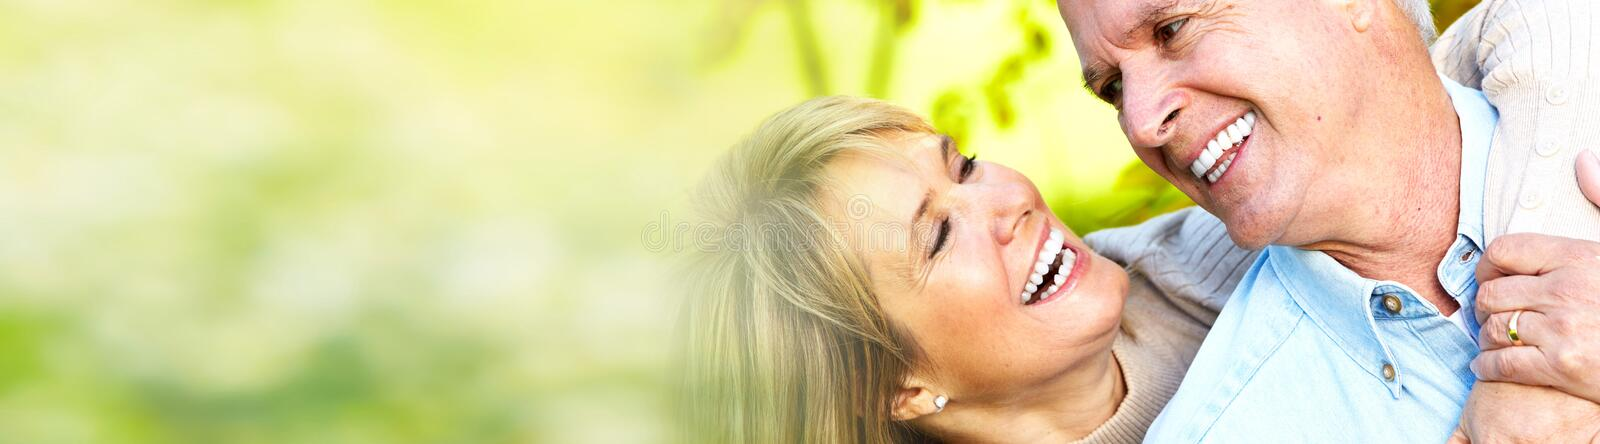 Download Smiling senior couple stock image. Image of banner, couple - 93056685